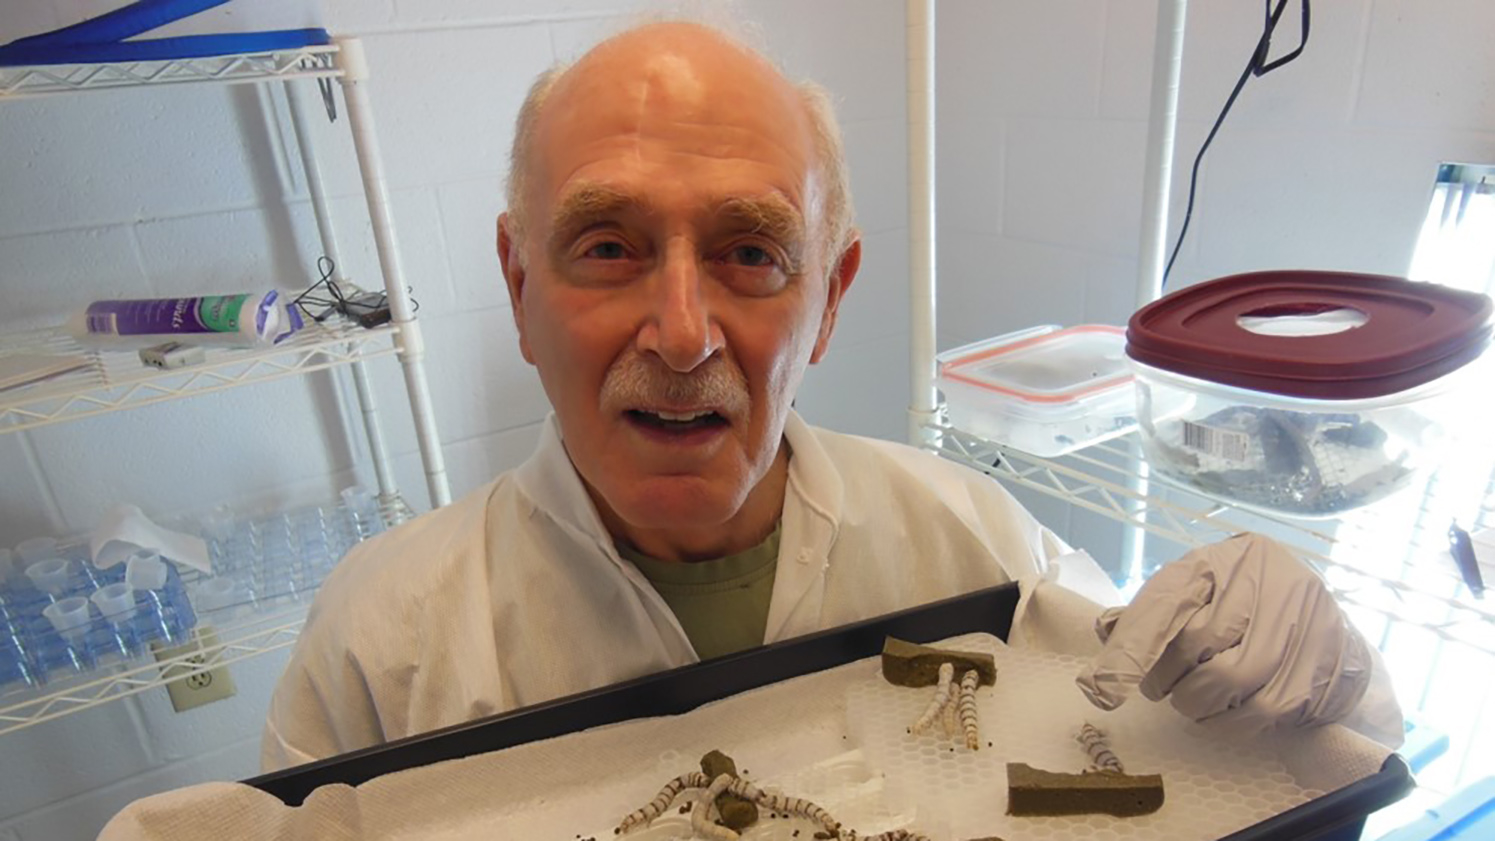 Pictured in his lab, Allen Cohen holds a tray of silkworms.